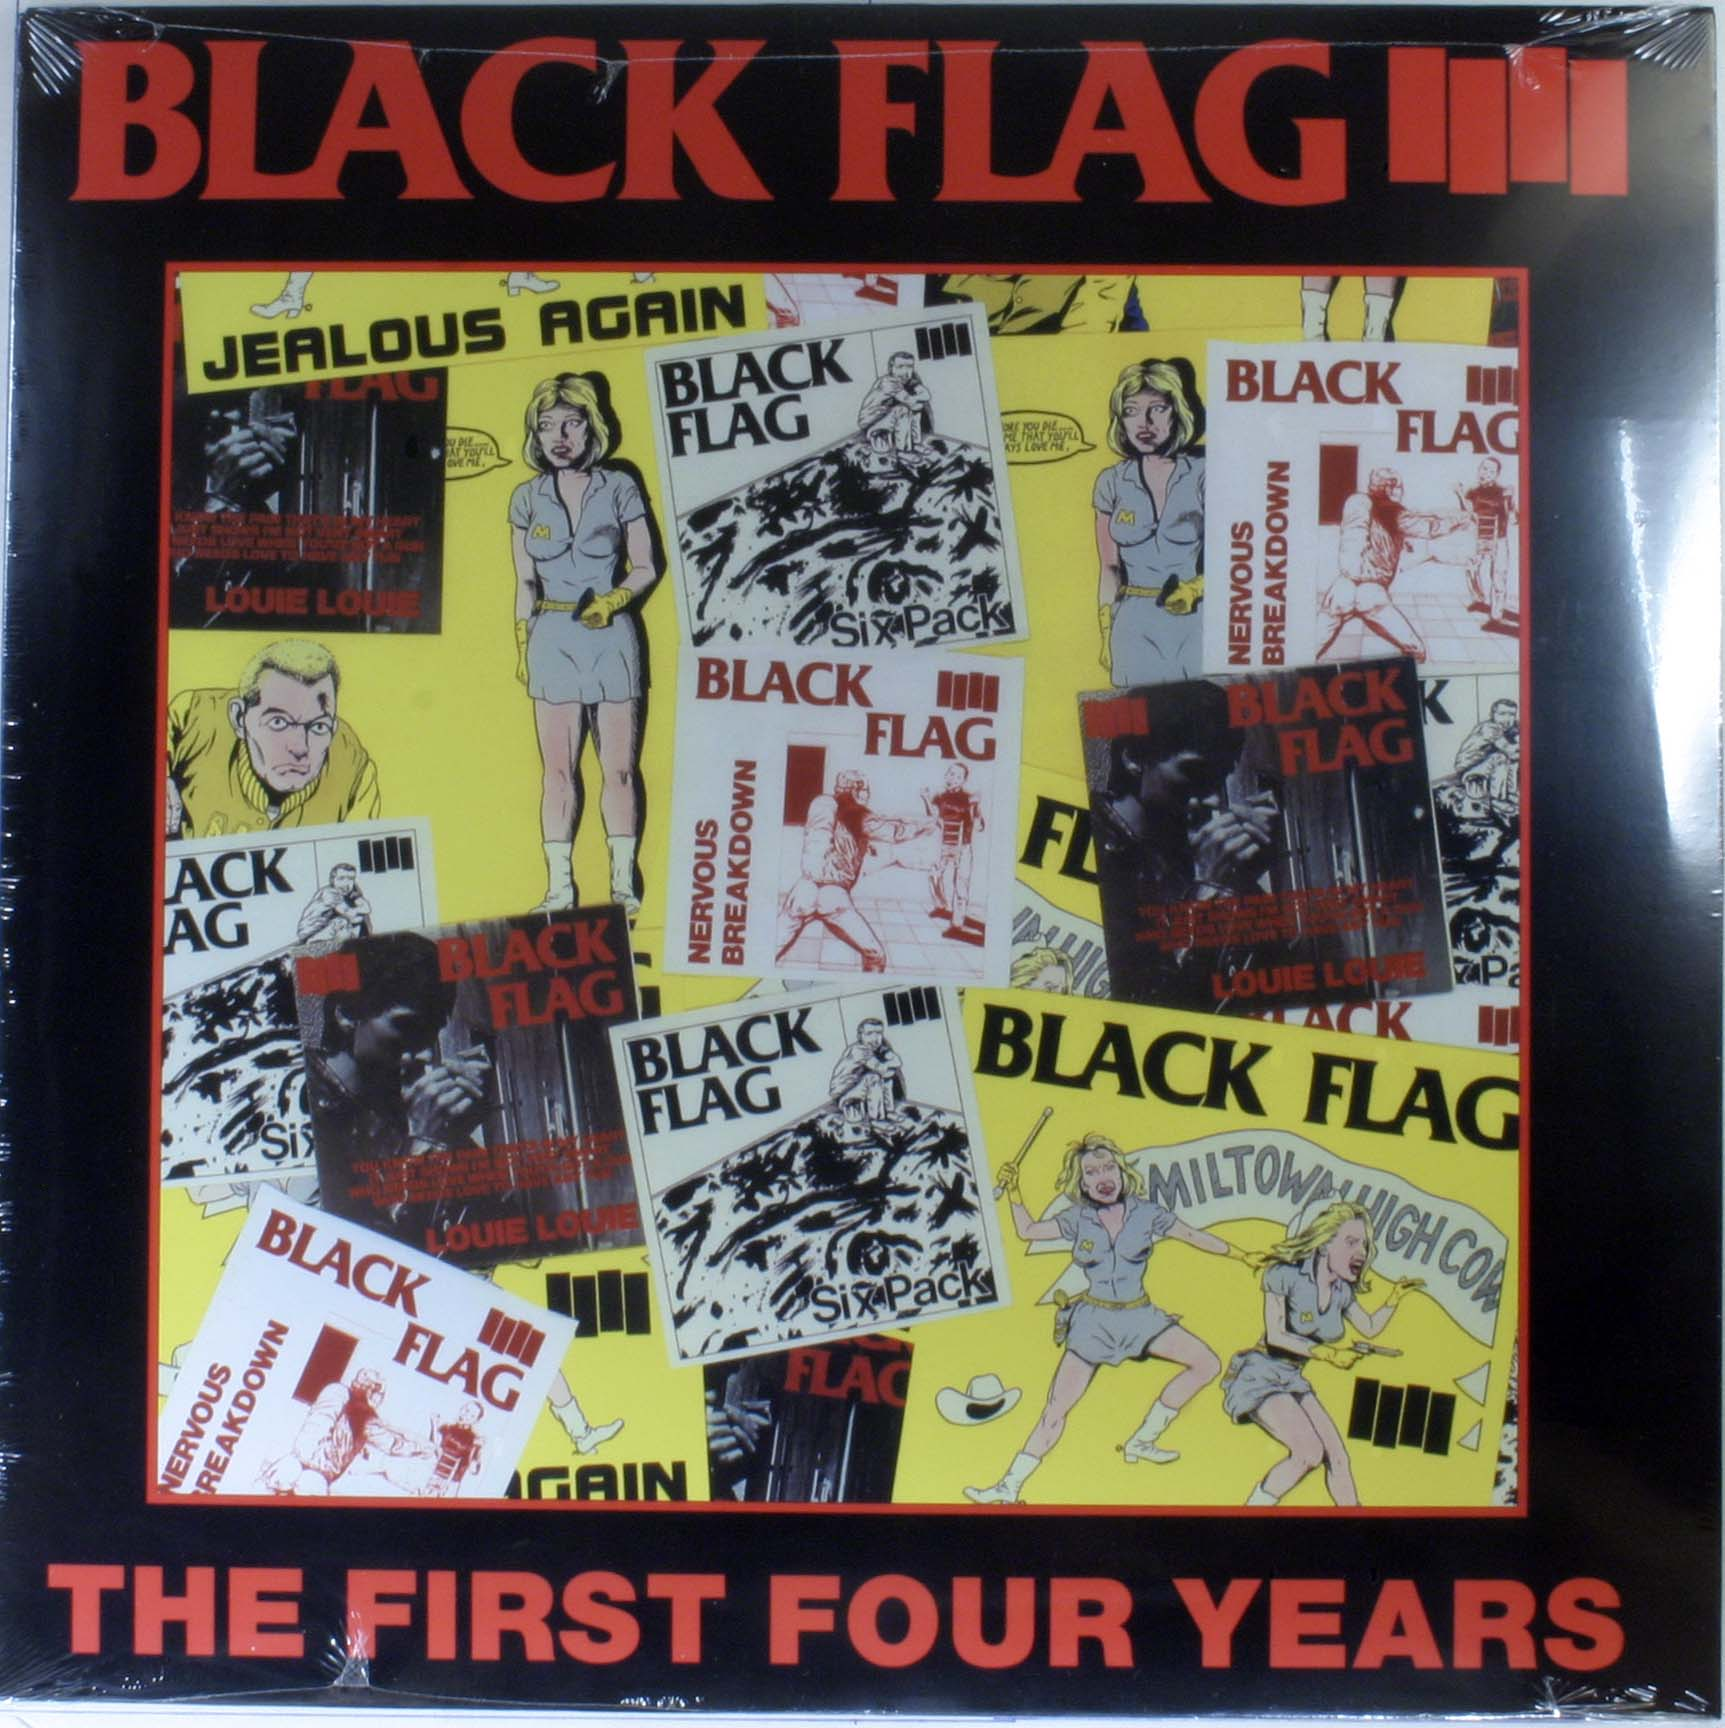 Black Flag - The First Four Years Album